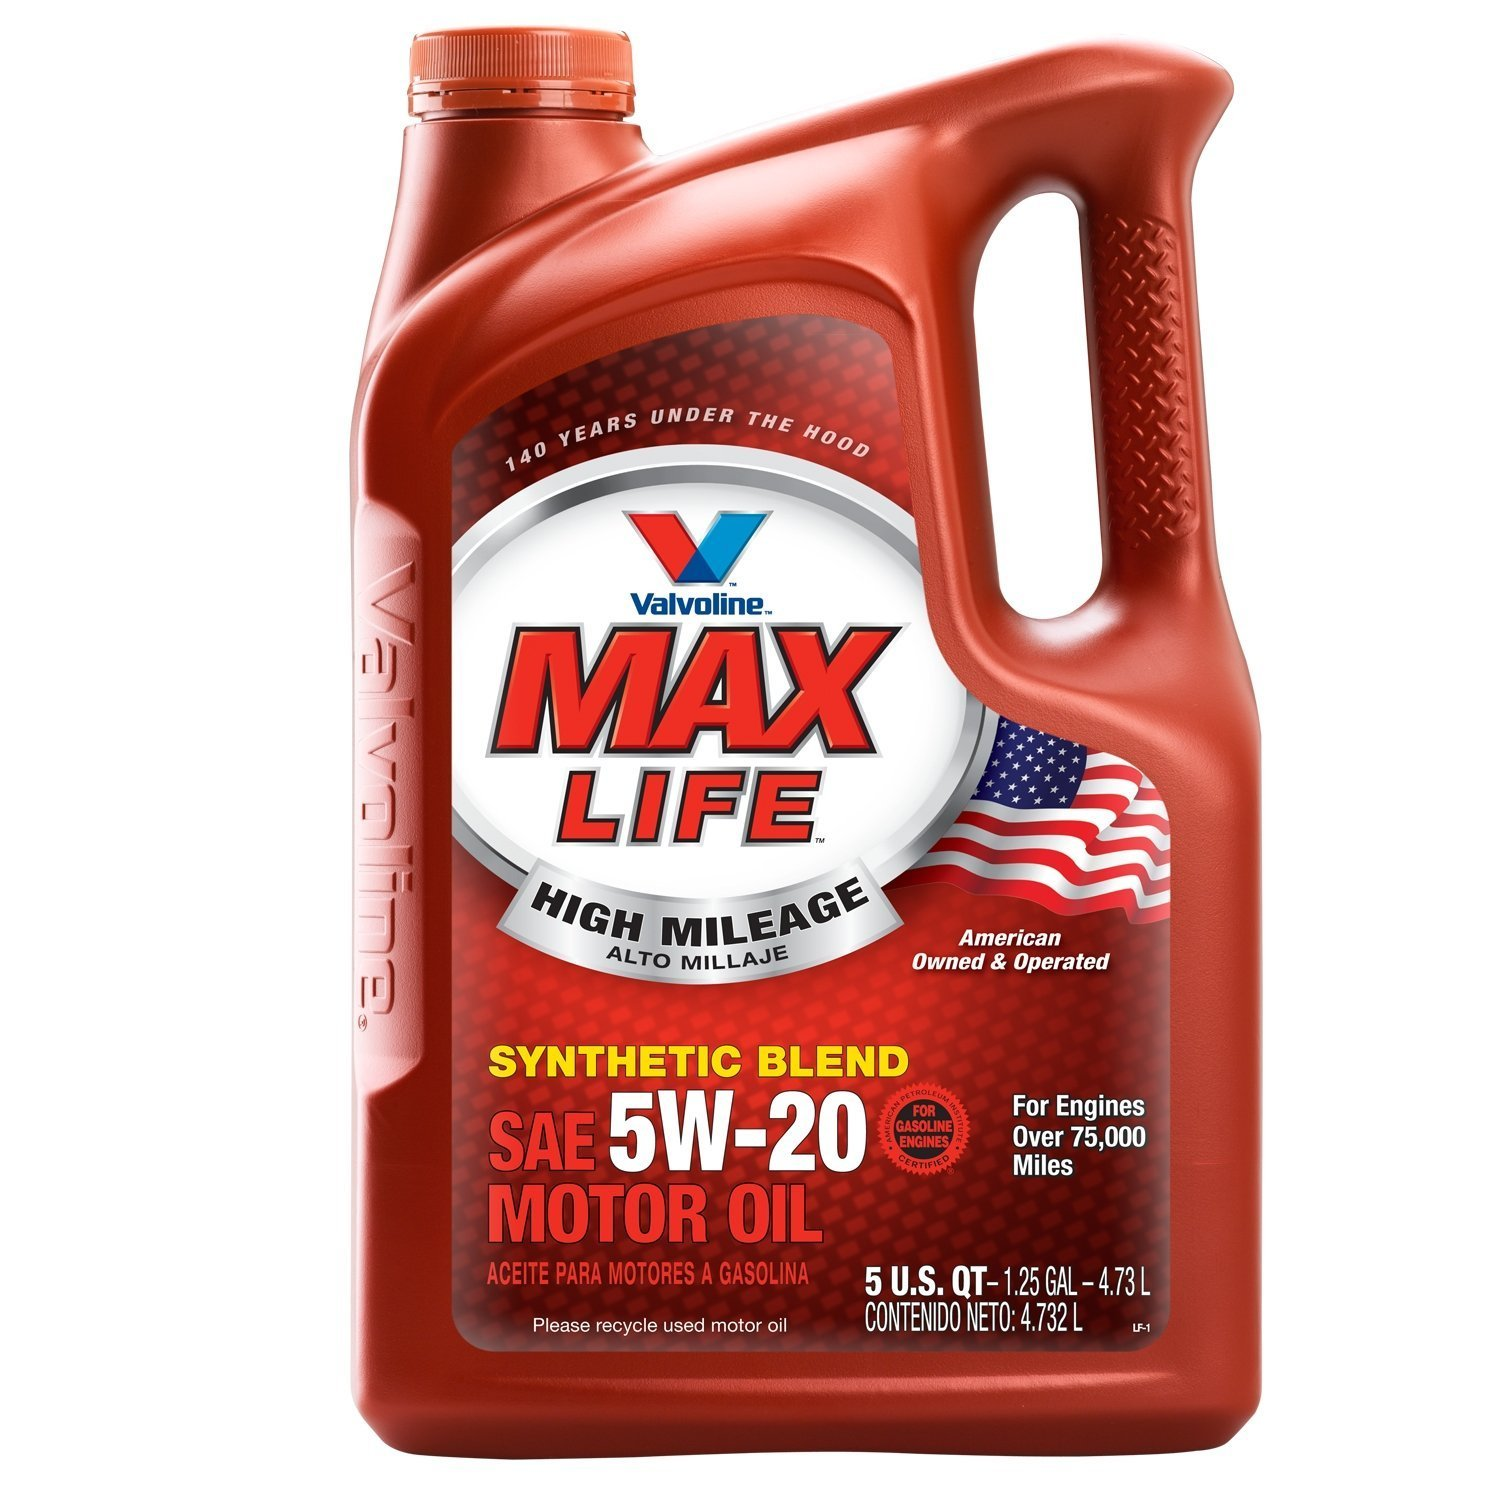 Valvoline High Mileage with MaxLife Technology 5W-20 Synthetic Blend Motor Oil - 5qt (782253) by Valvoline